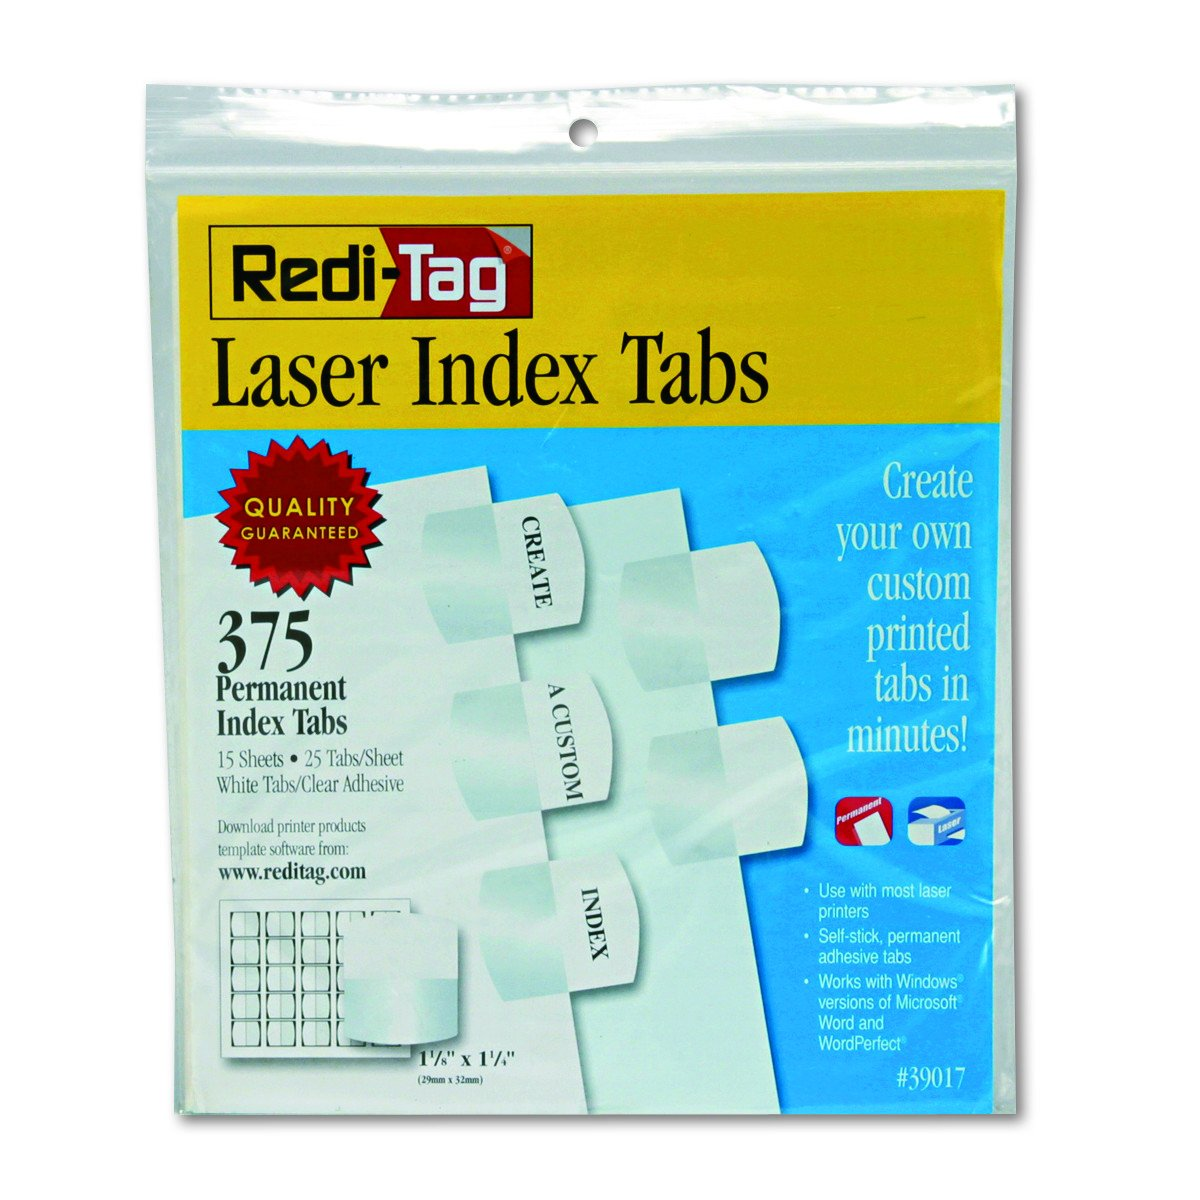 Redi-Tag Customizable Laser Printable Index Tabs, Permanent Adhesive, 1-1/8 x 1-1/4 Inches, Bulk Packed, 375 Tabs per Pack, White (39017)